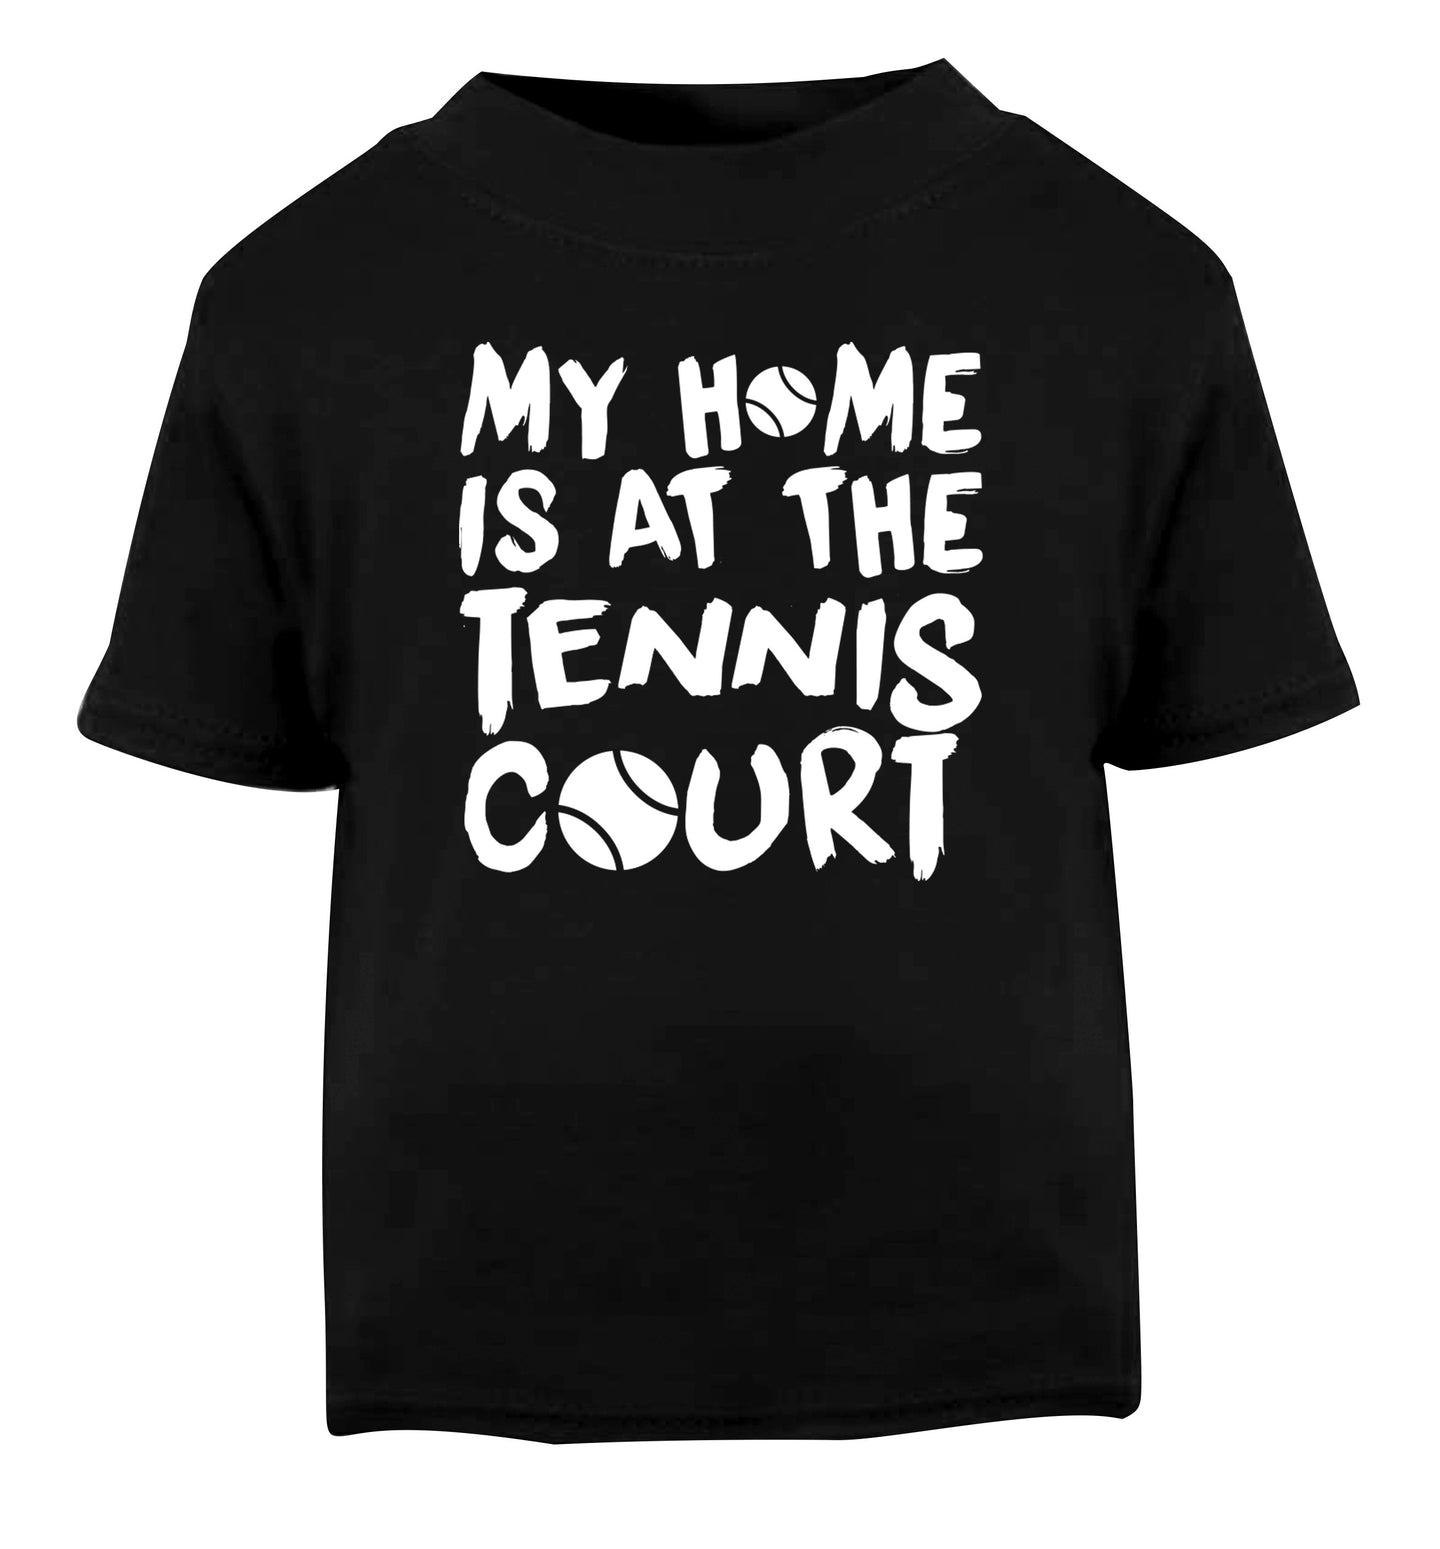 My home is at the tennis court Black Baby Toddler Tshirt 2 years